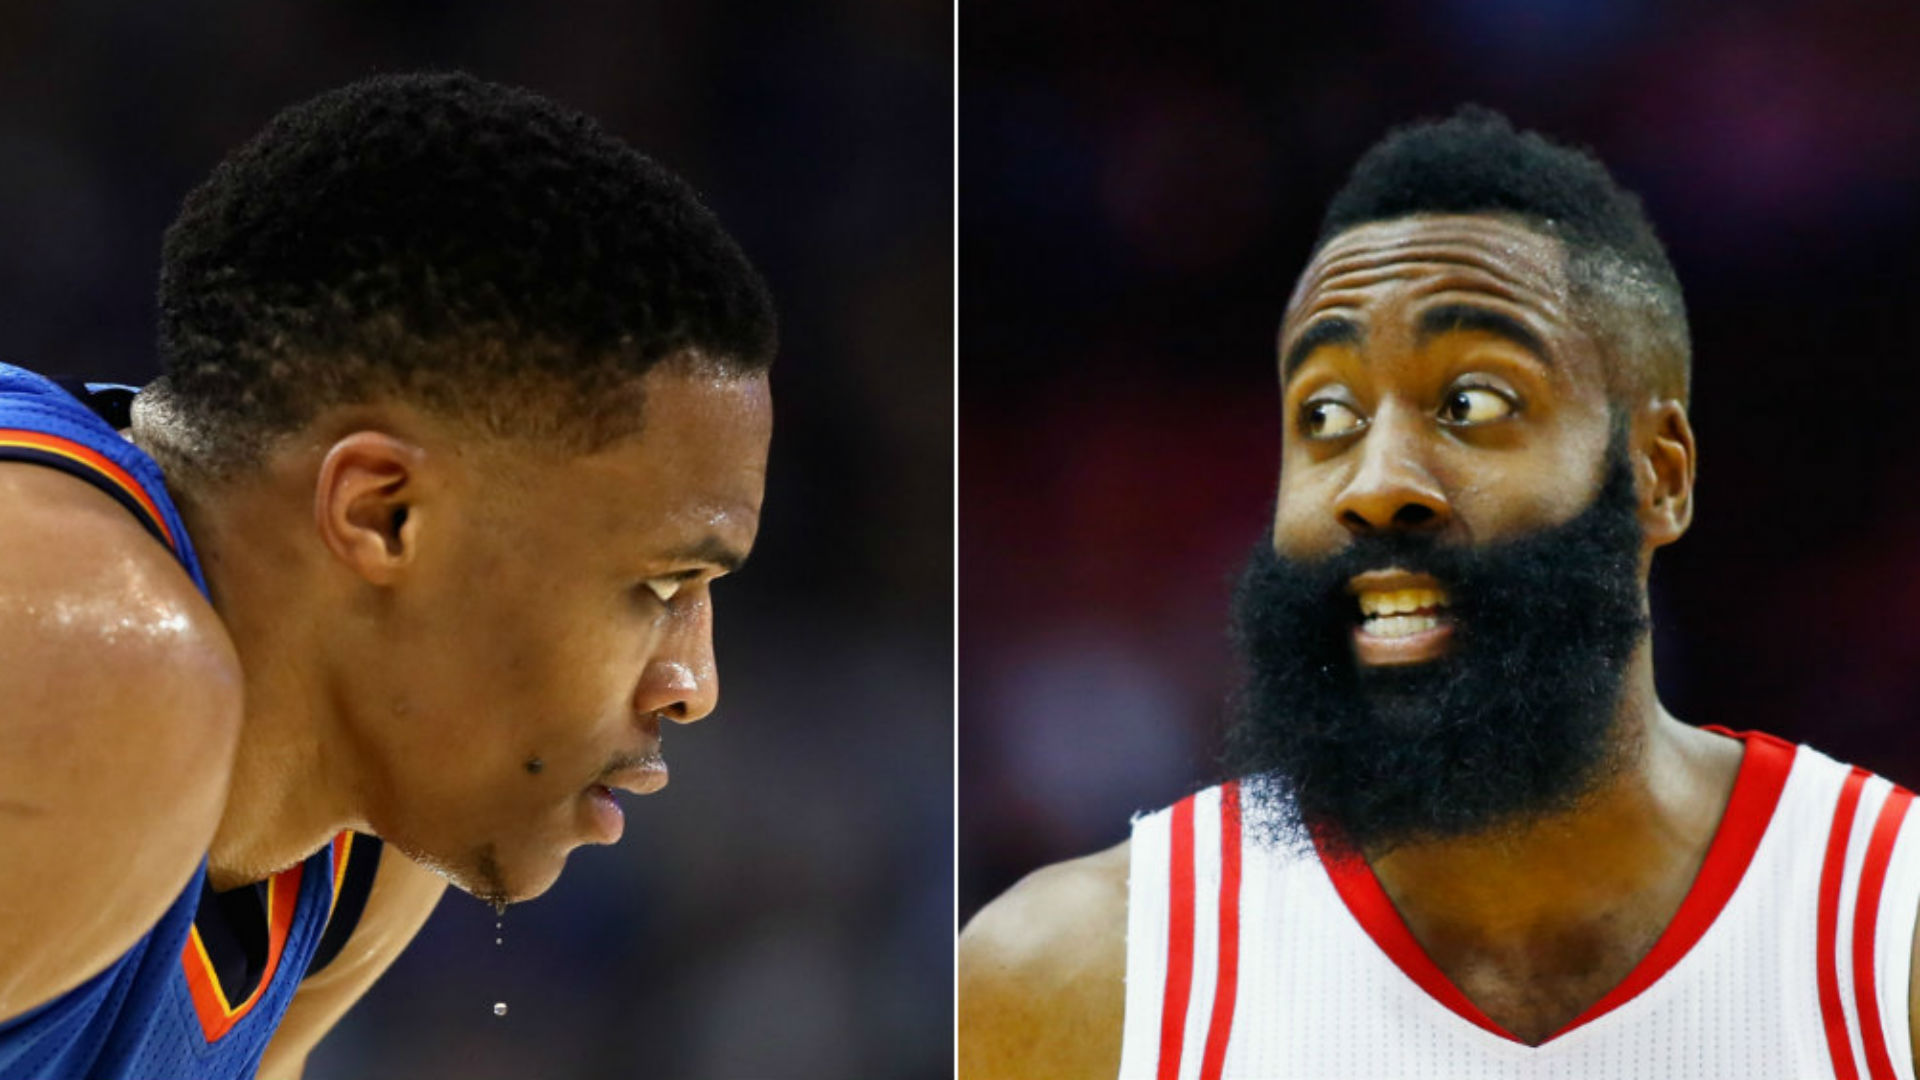 Thunder guard Russell Westbrook and Rockets guard James Harden